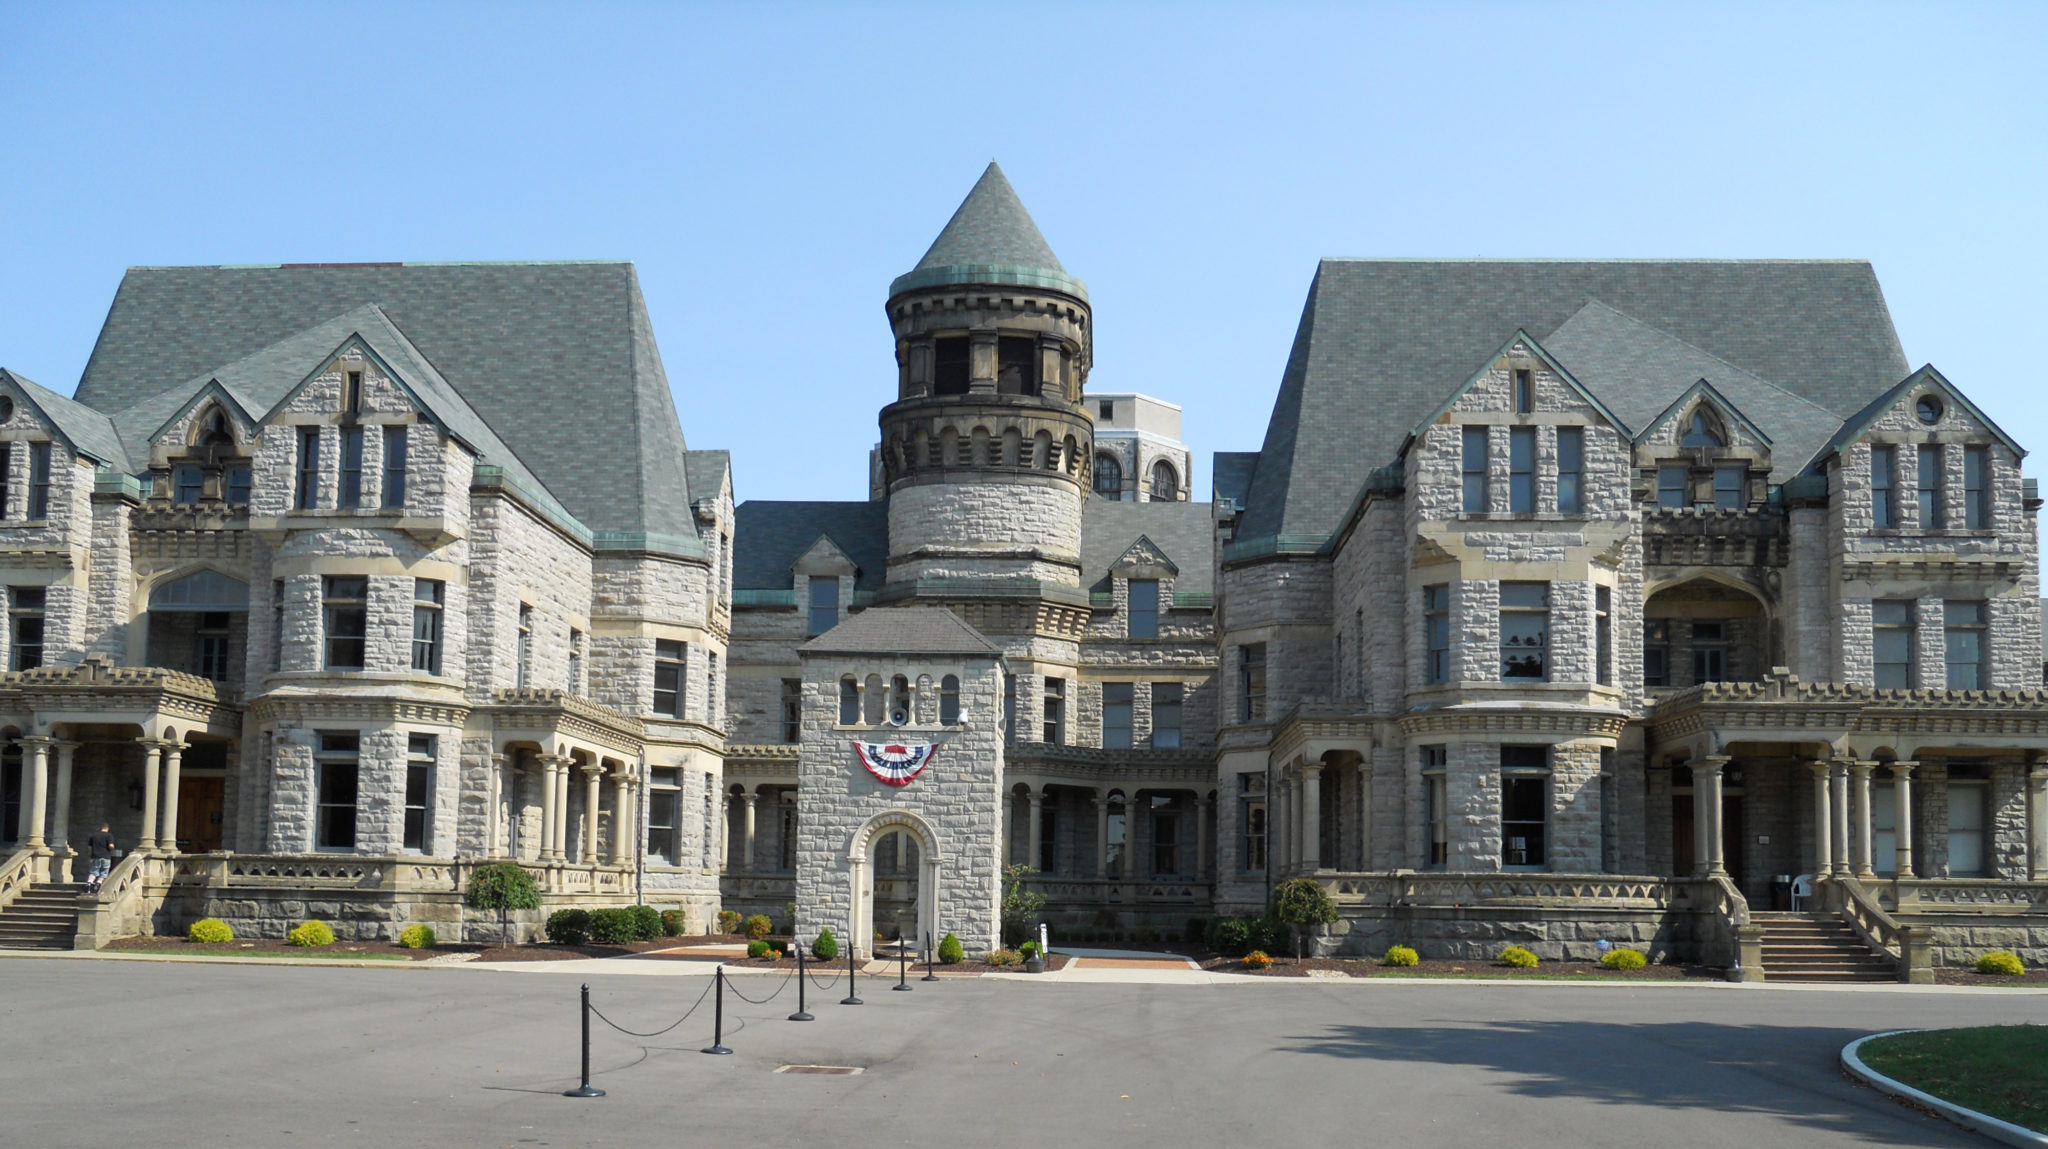 mansfield reformatory Mansfield reformatory many a driver finding themselves on the outskirts of mansfield, ohio, for the first time has had to keep from driving off the road when they catch a glimpse of the enormous gothic structure that seemingly rises up out of the mist.